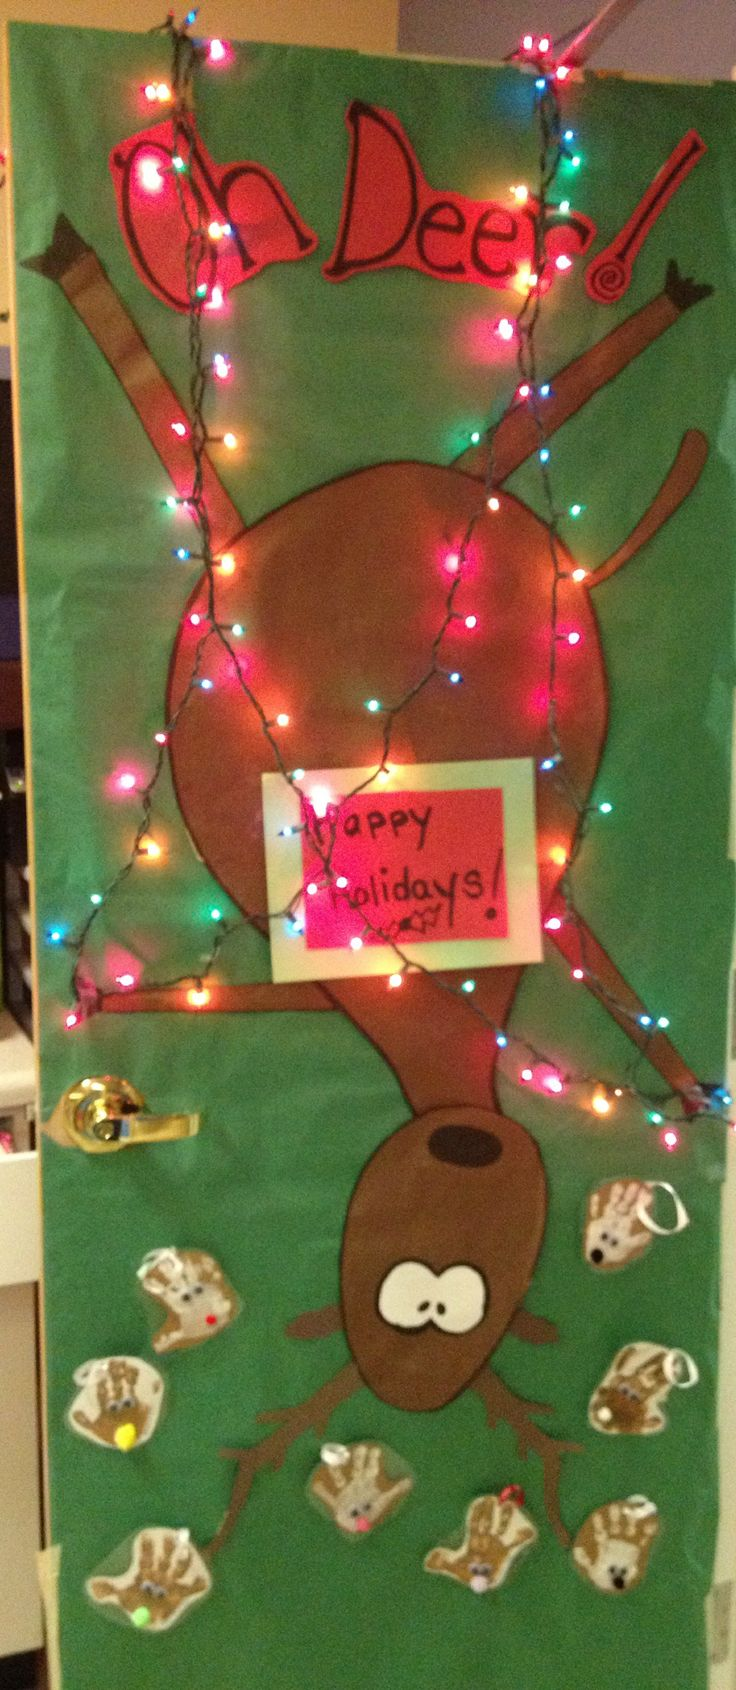 Preschool Classroom Decoration For Christmas : Best images about preschool door wall ideas on pinterest